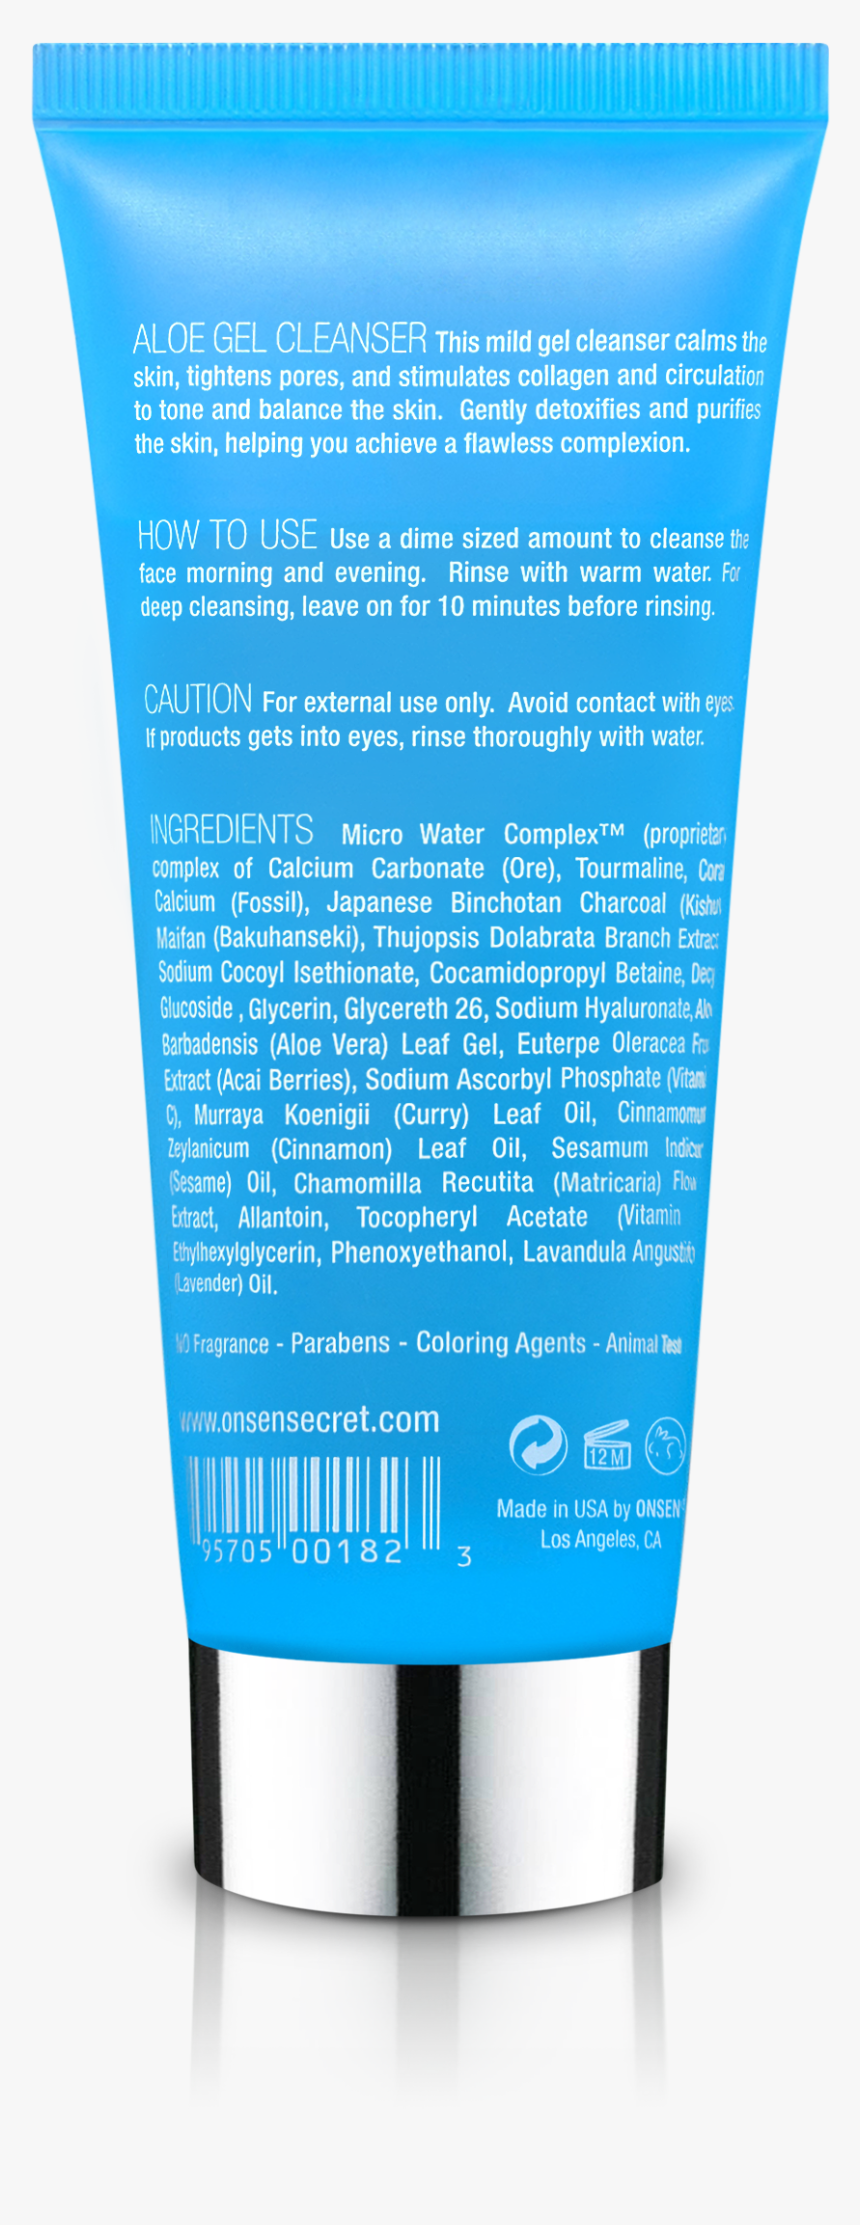 Aloe Gel Cleanser - Cosmetics, HD Png Download, Free Download